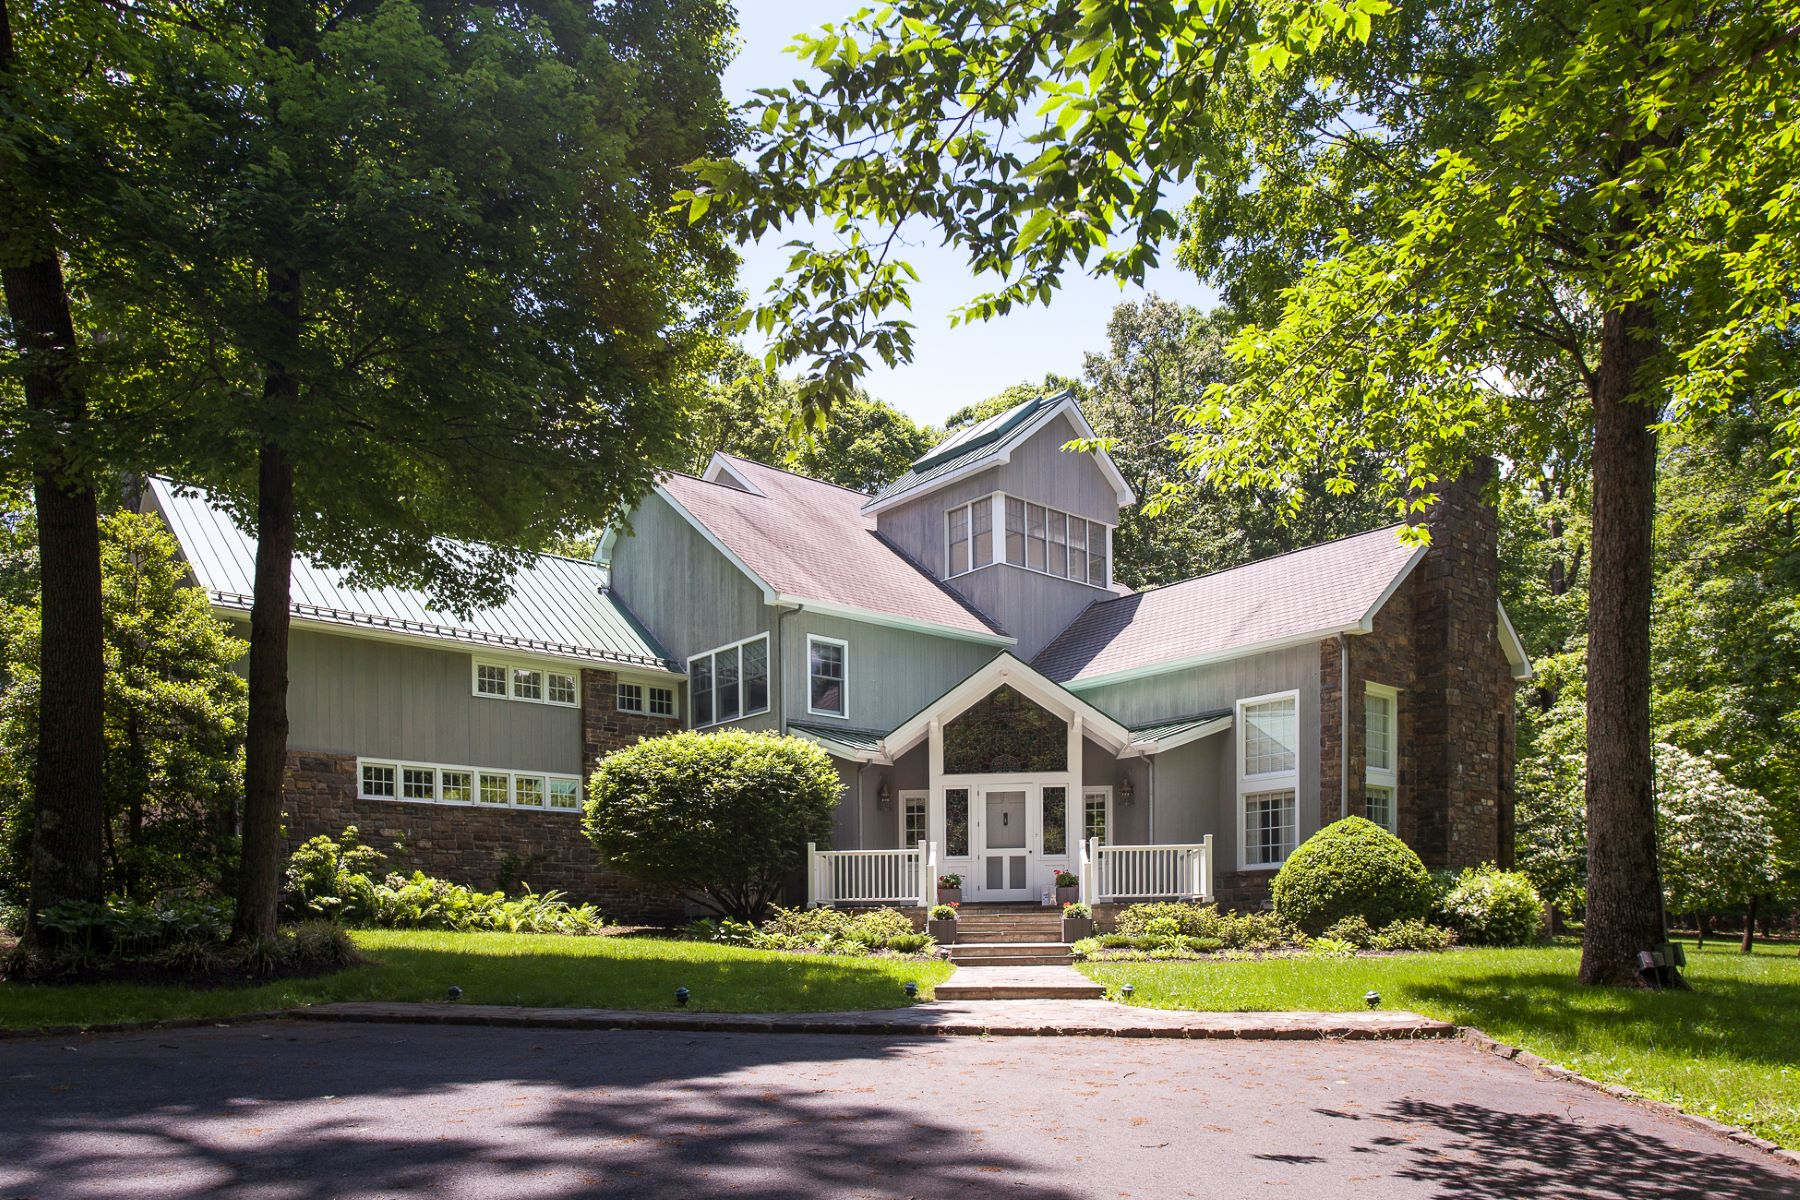 Single Family Home for Sale at A Scenic Hillside Retreat Designed by Jim Hamilton 120 Province Line Road, Skillman, New Jersey 08558 United StatesMunicipality: Hopewell Township